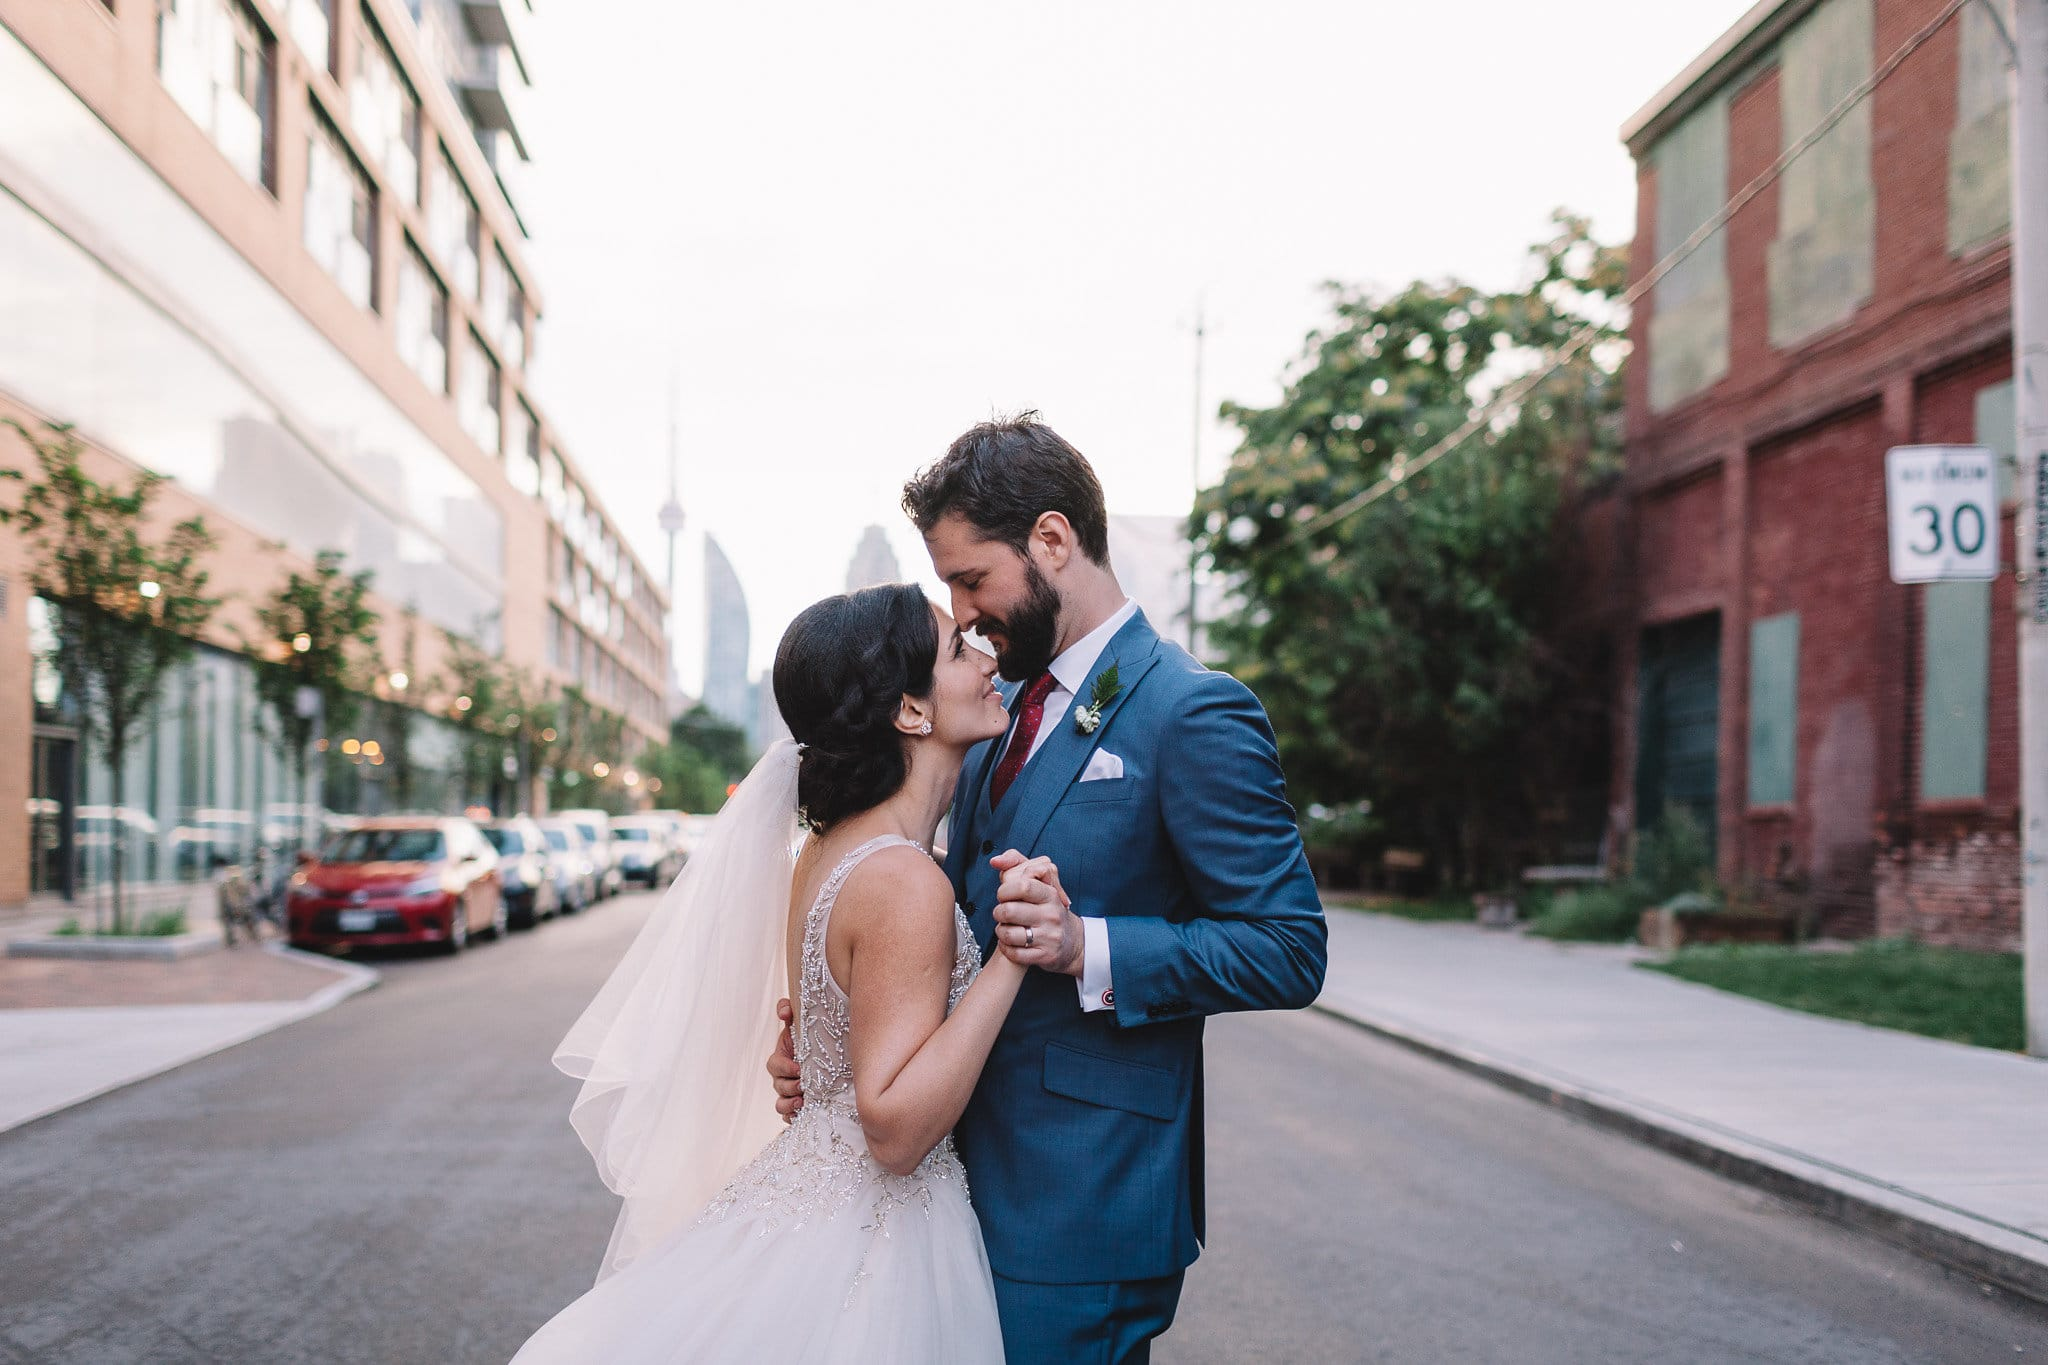 Toronto Wedding with Golden Princess Ballgown. Amélie wedding dress by Sottero and Midgley.